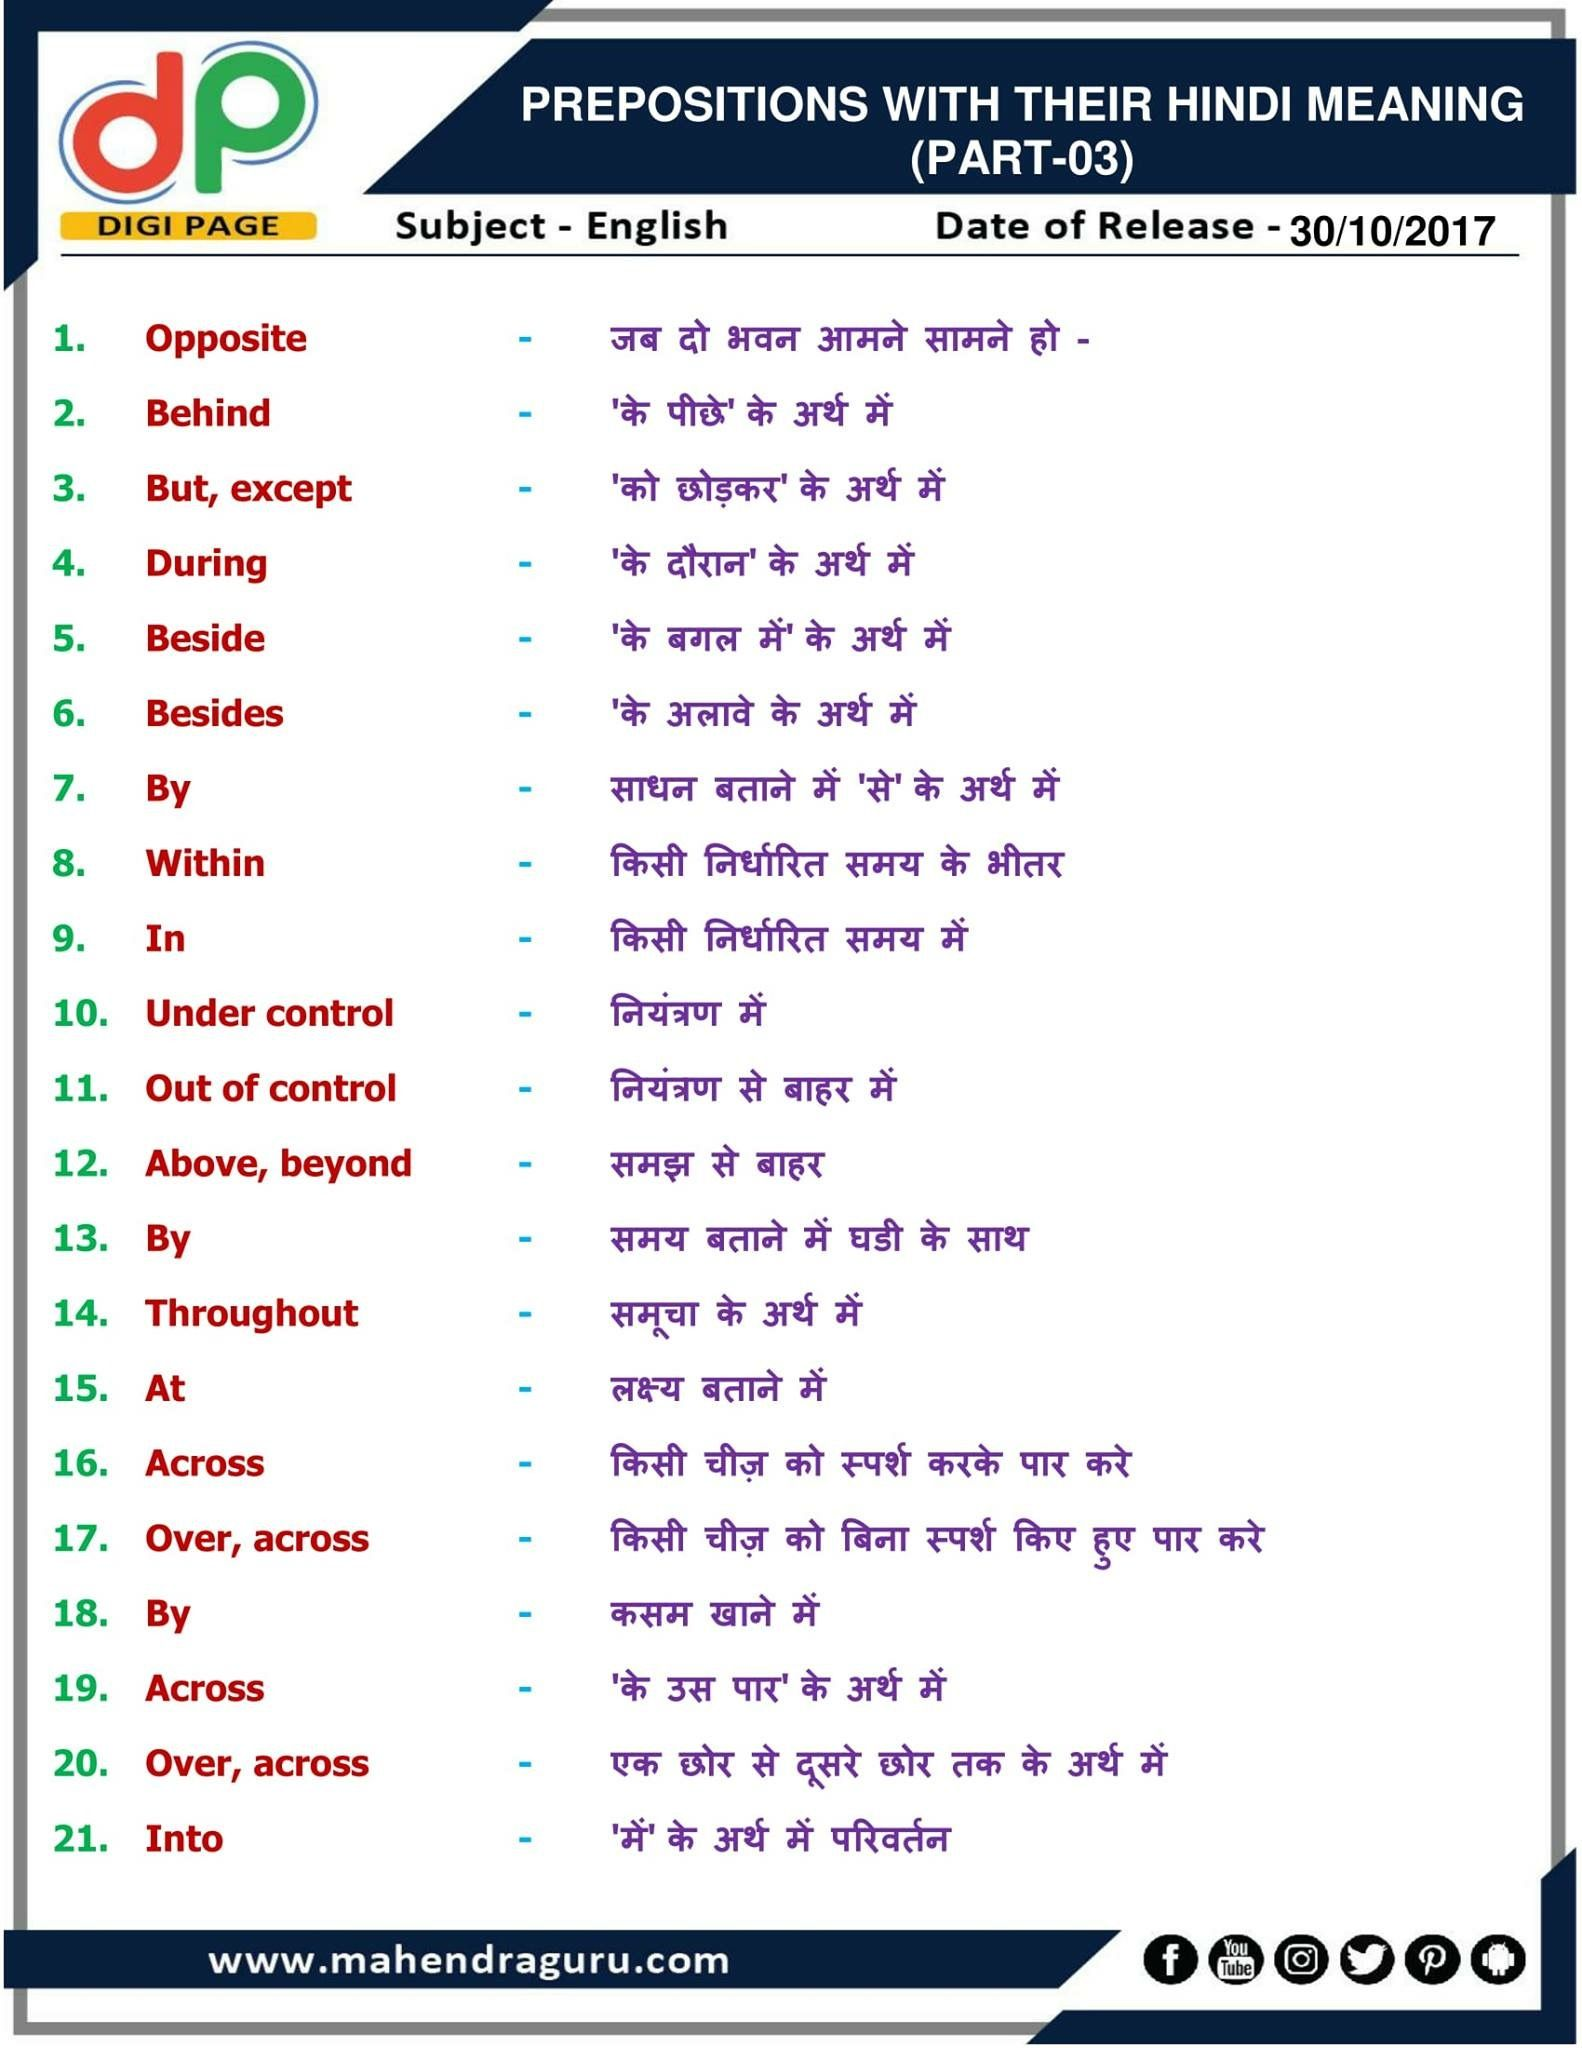 Dp prepositions with their hindi meaning for ibps clerk also pin by mahendra guru on free study material english vocabulary rh pinterest